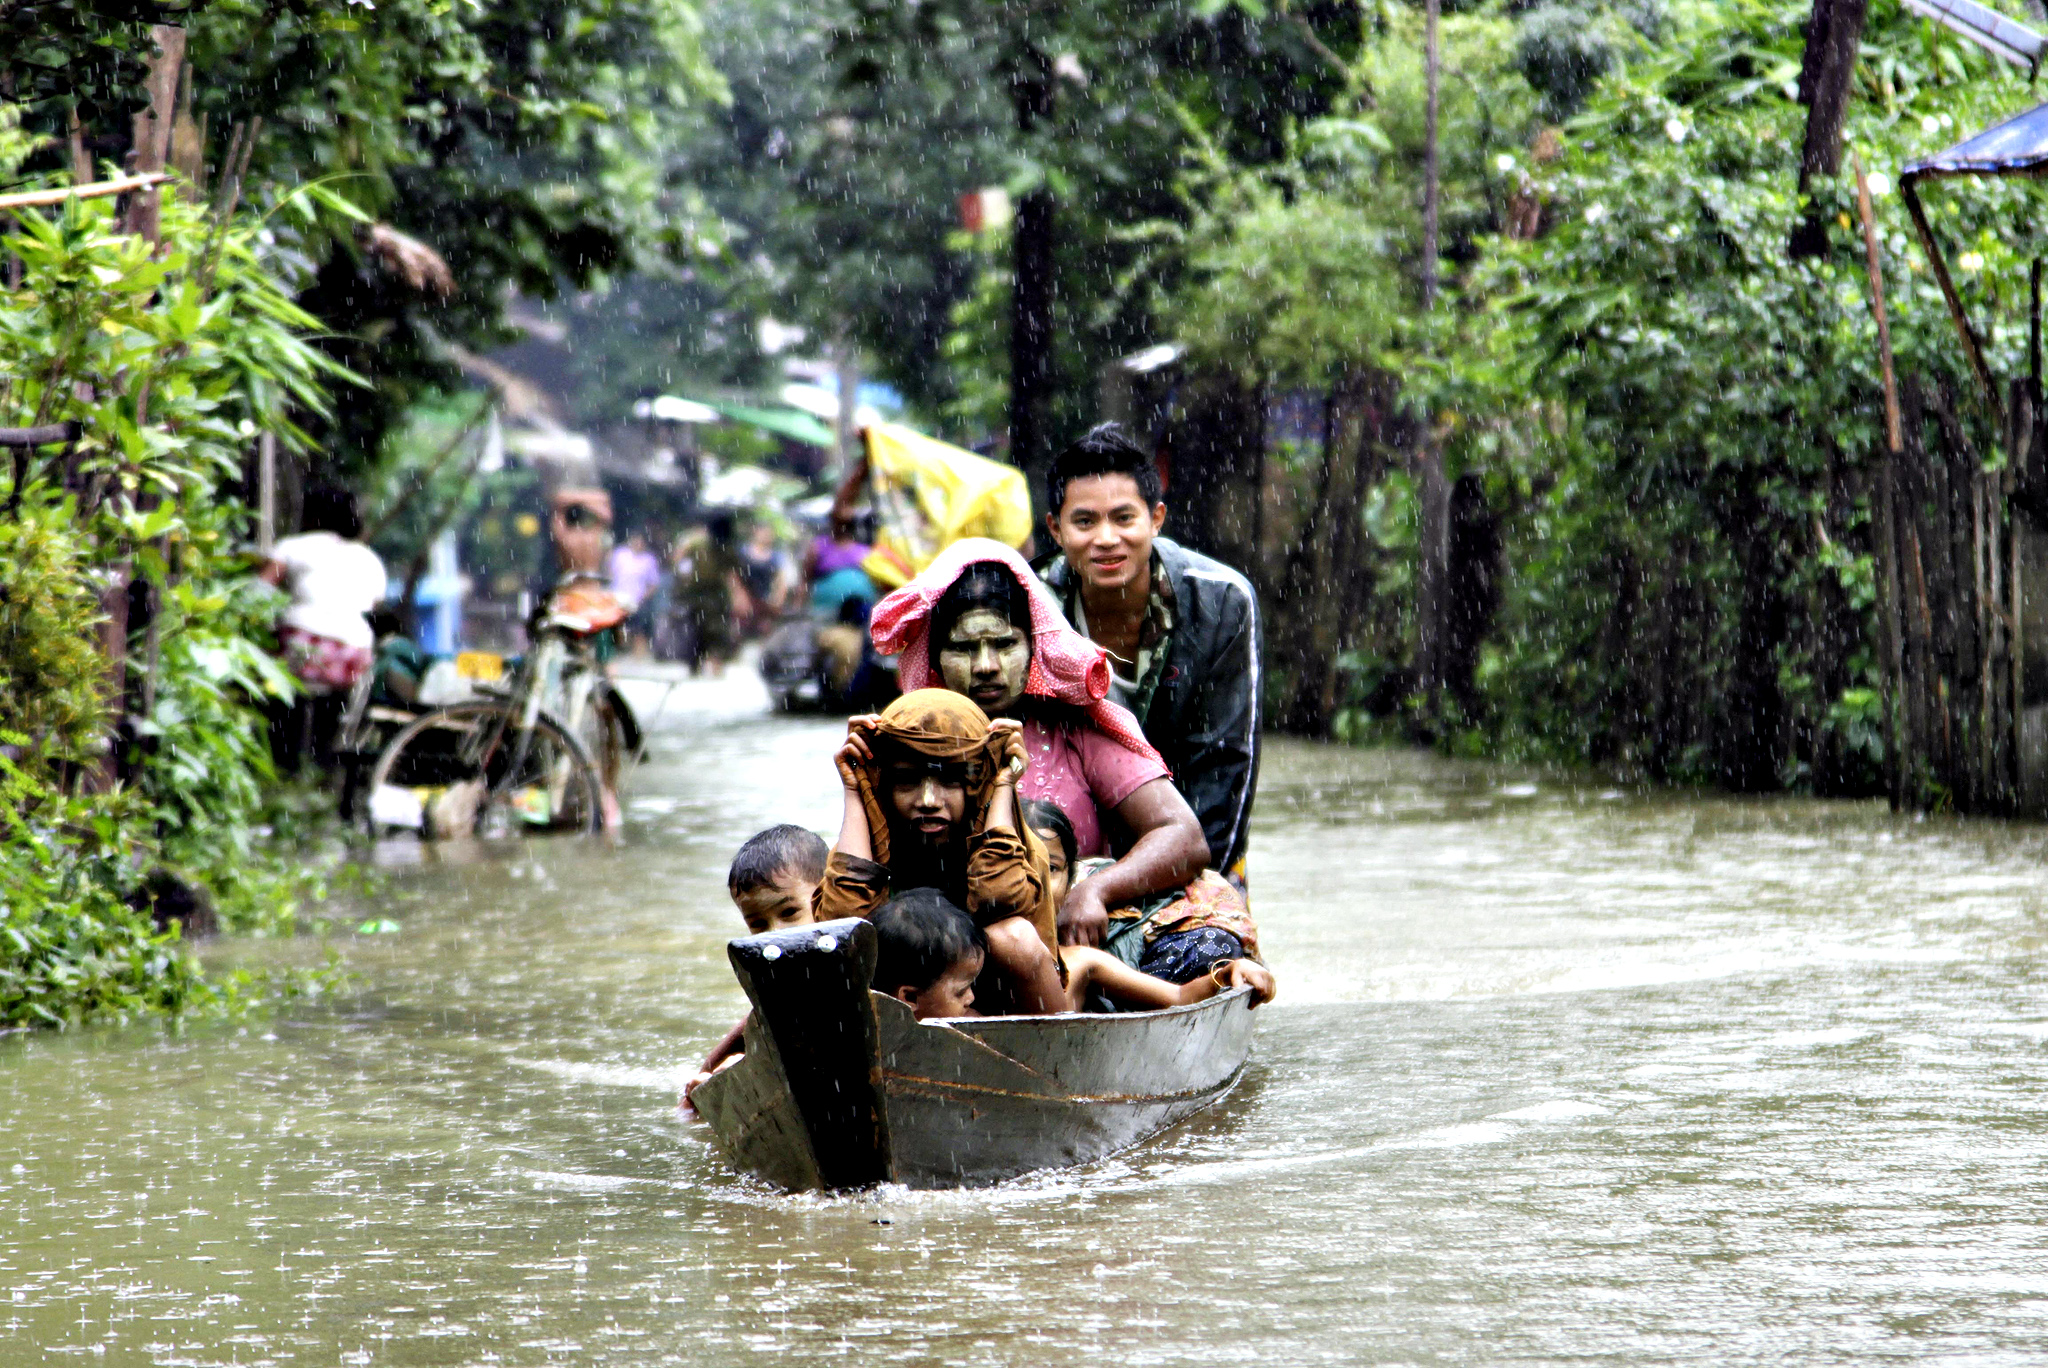 Local residents ride a boat on a flooded road overflown by the Bago river at a low-lying part in Bago, 80 kilometers (50 miles) northeast of Yangon, Myanmar, Monday, Aug. 4, 2014.   Flooding is common during Myanmar's monsoon season, which typically starts in late May and ends in mid-October.